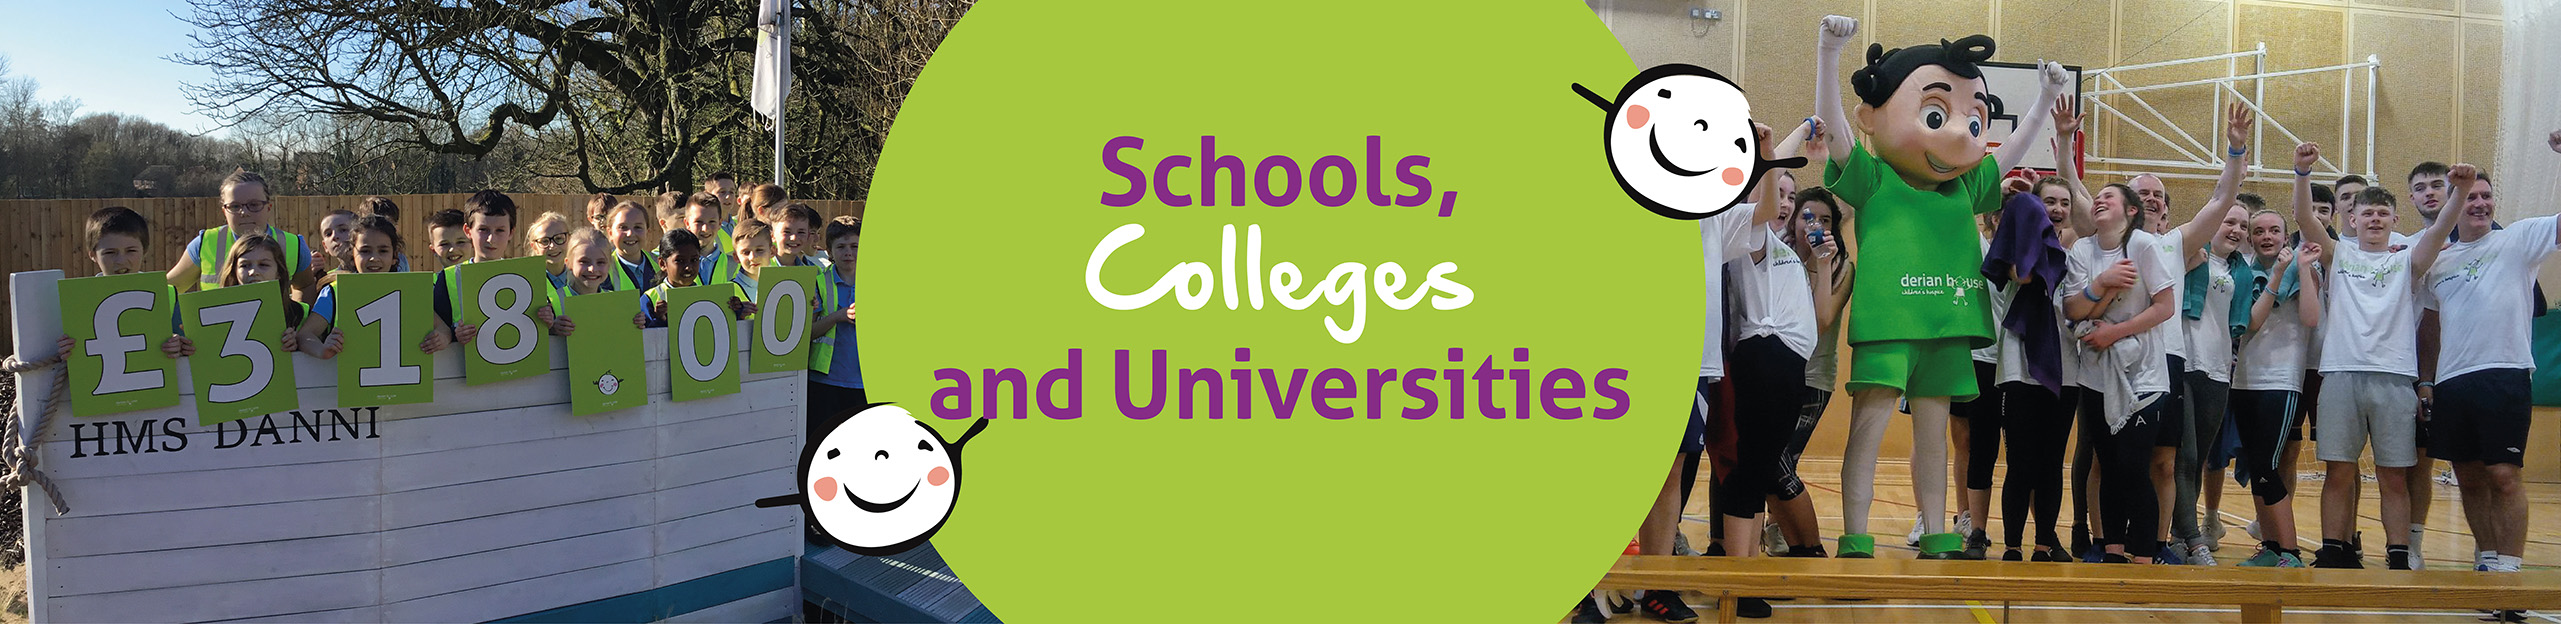 derian house Schools, Colleges & Universities